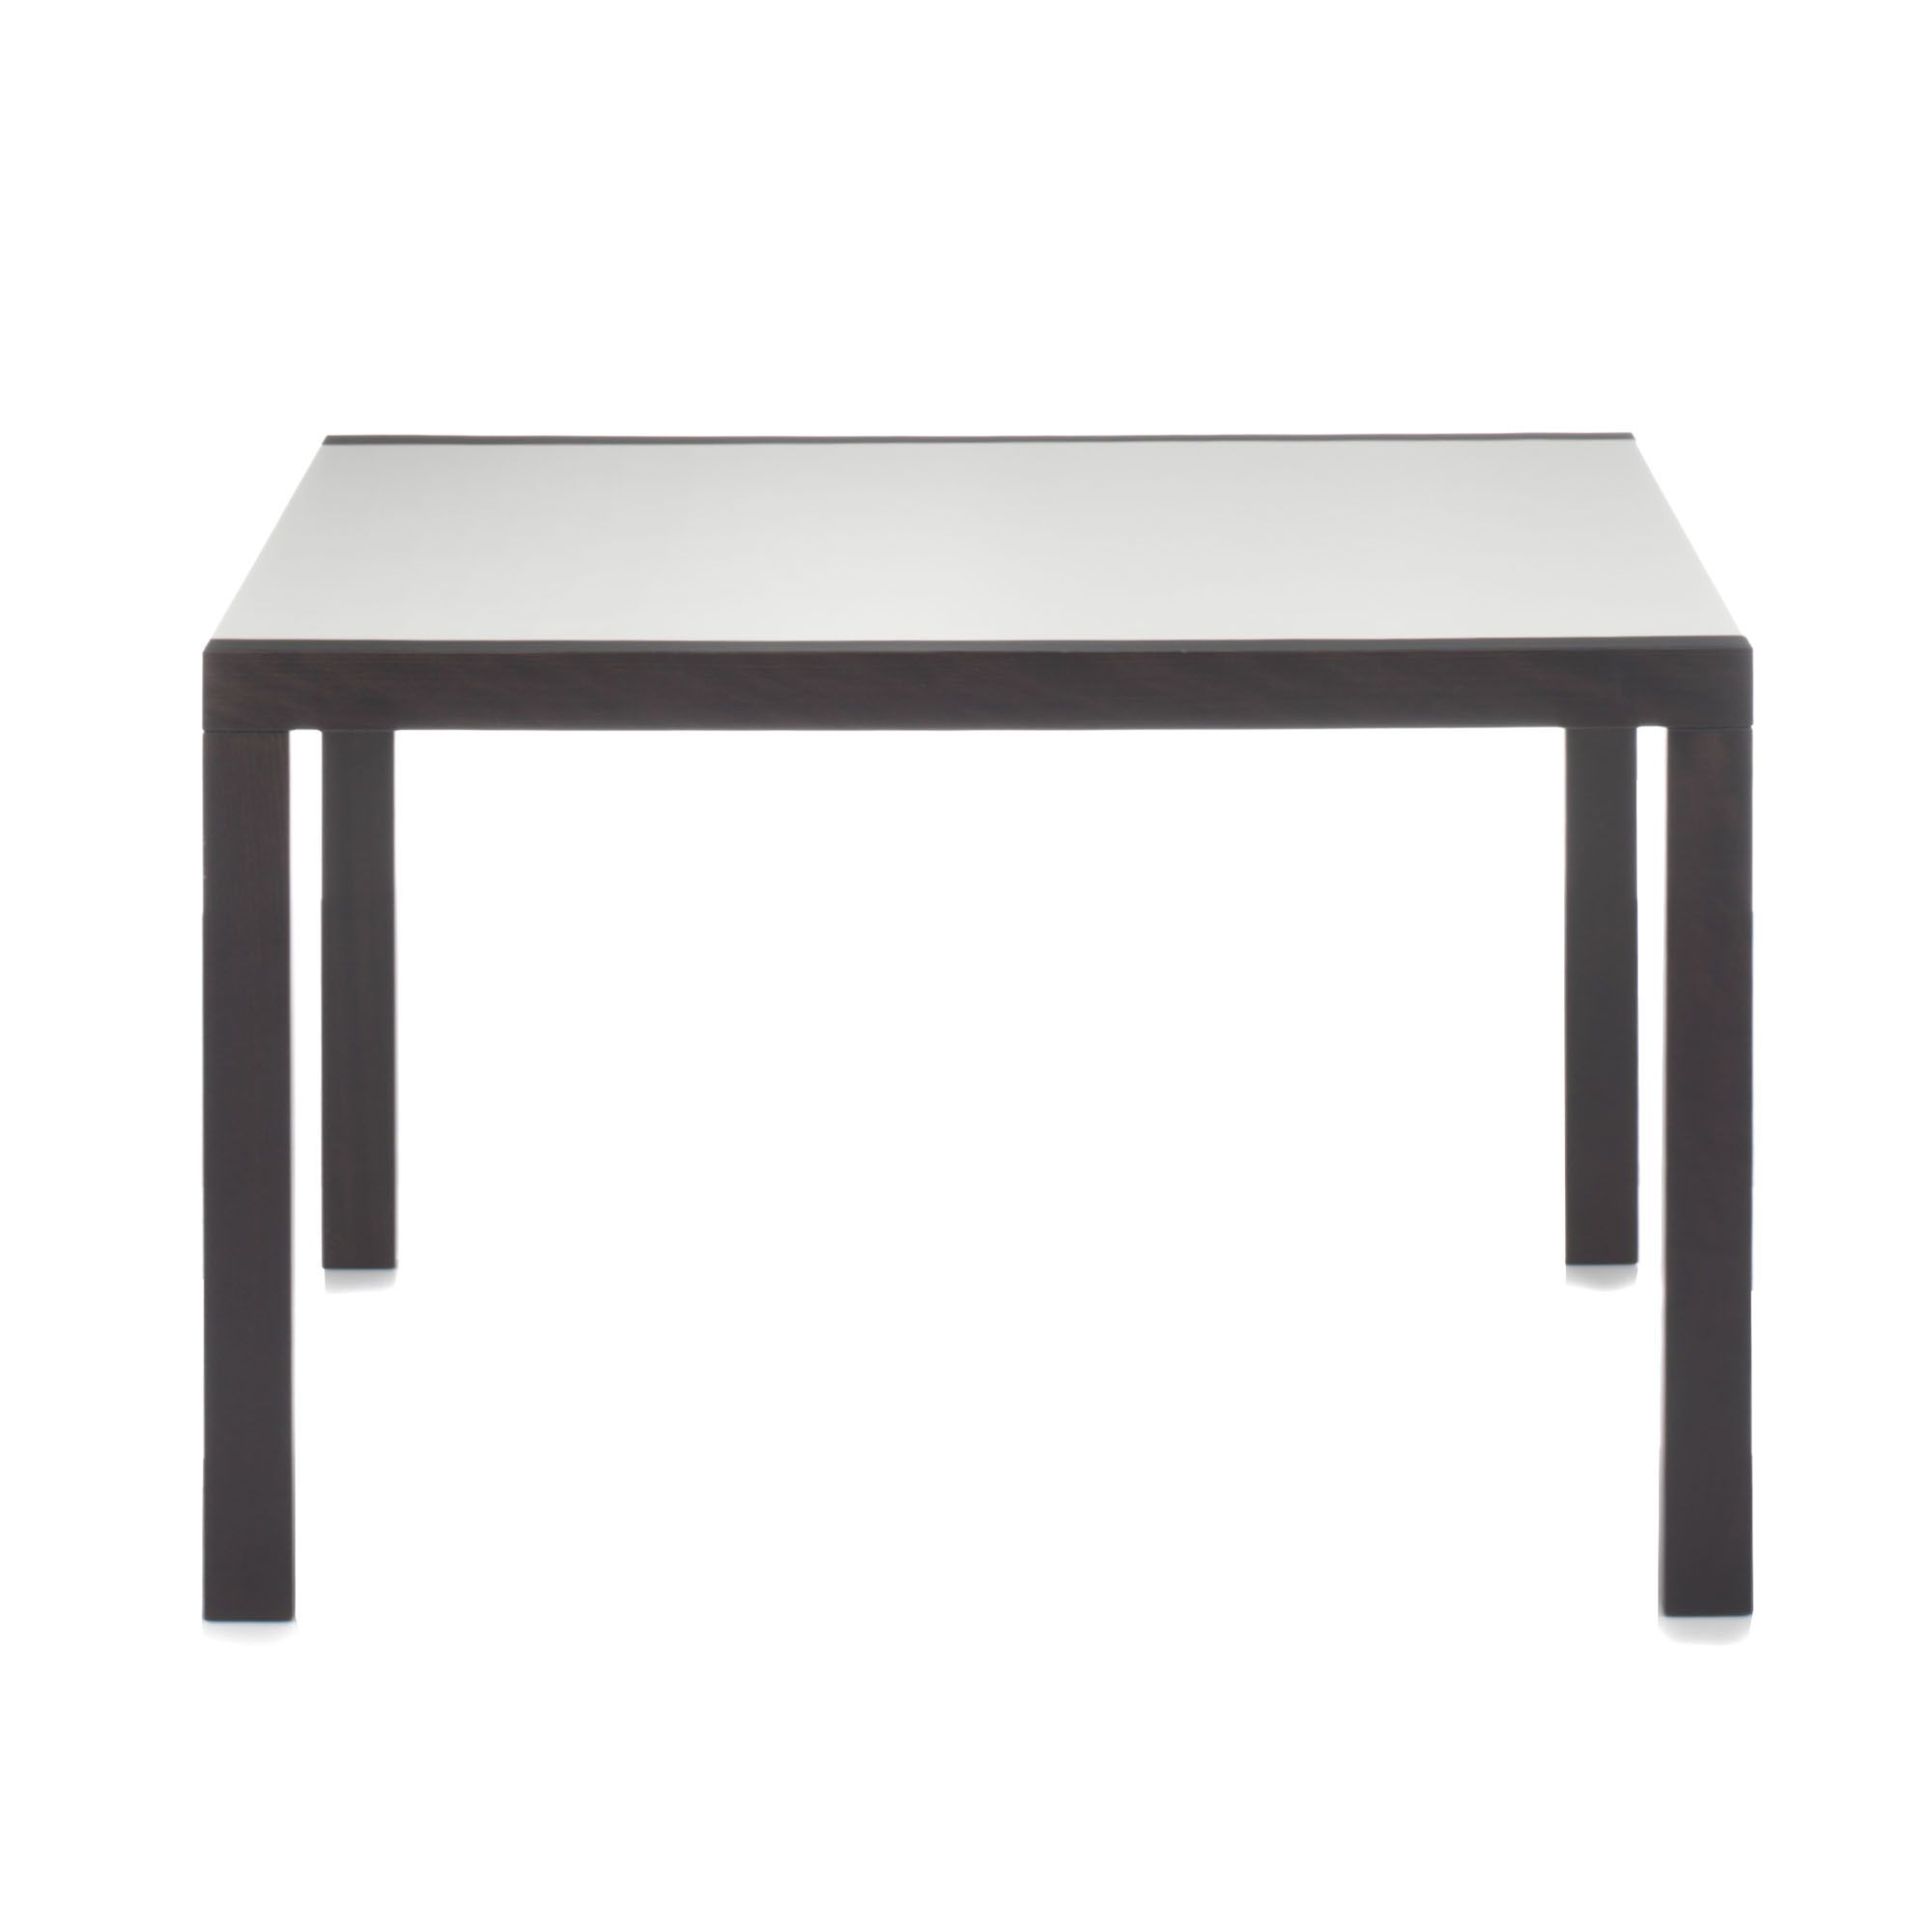 Table rectangulaire extensible de 4 8 couverts bicolore for Table de salle a manger 15 couverts